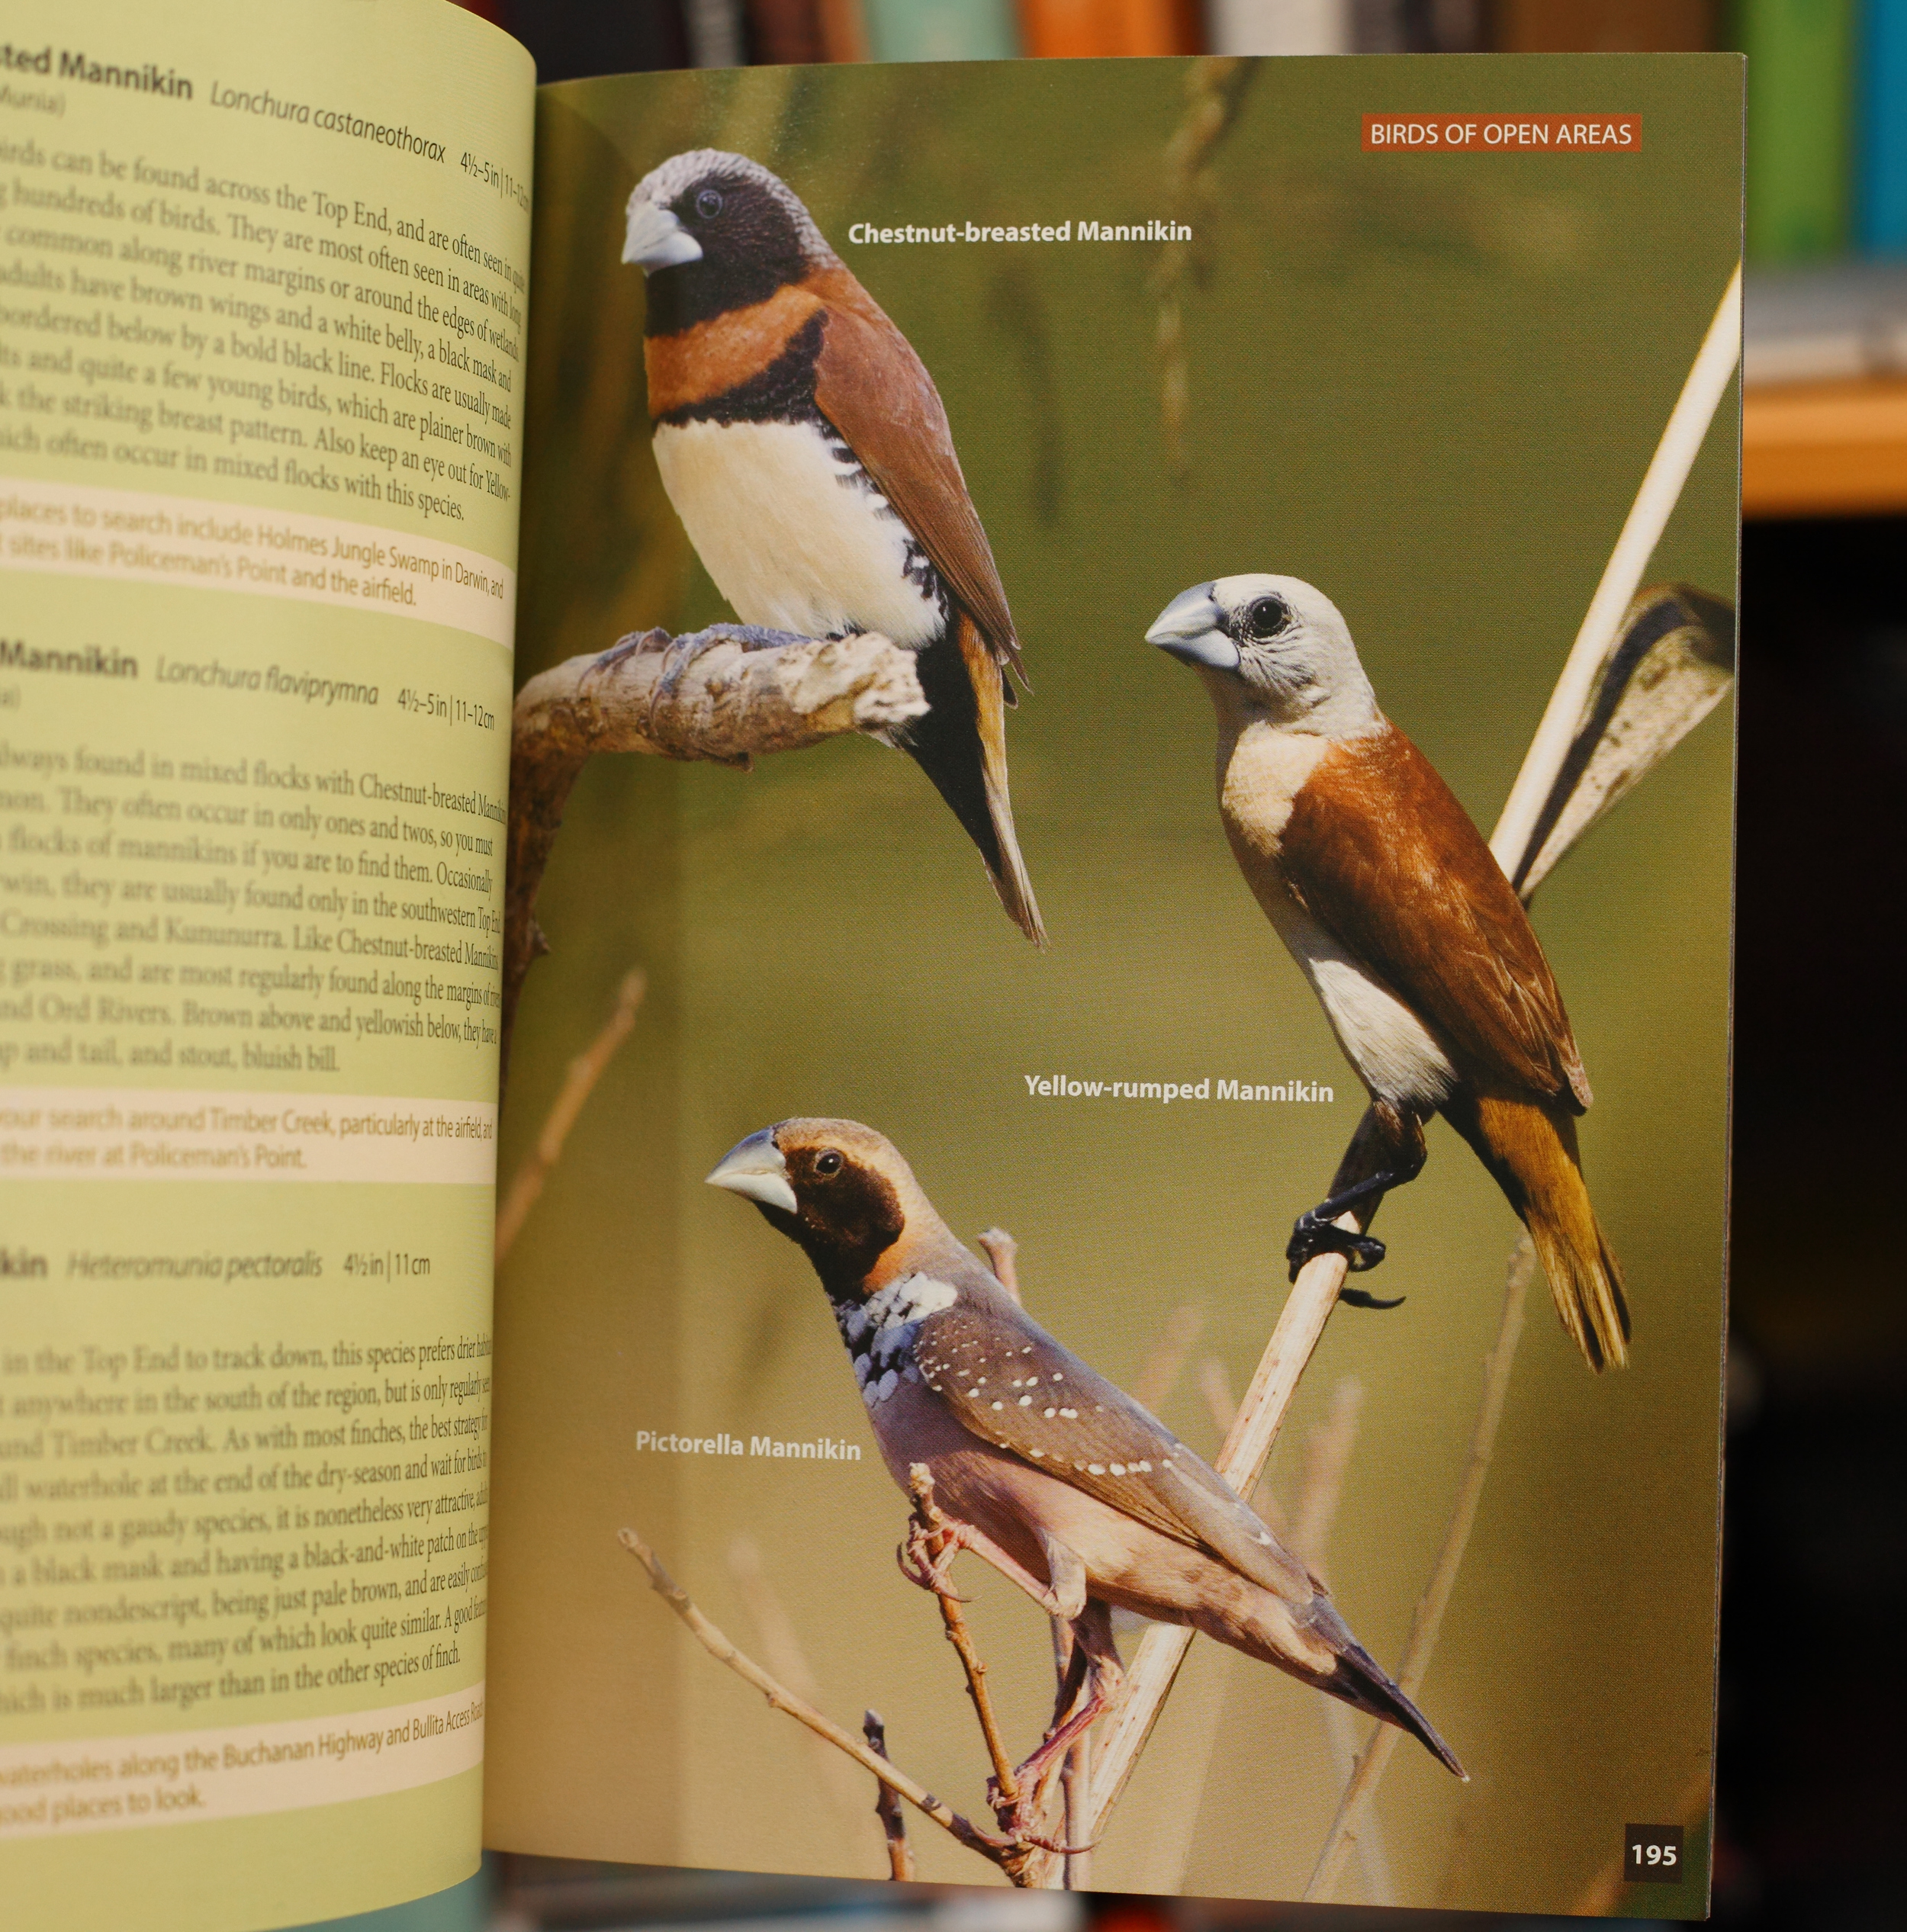 One of the finch pages: flawless images with simple, beautiful presentation.